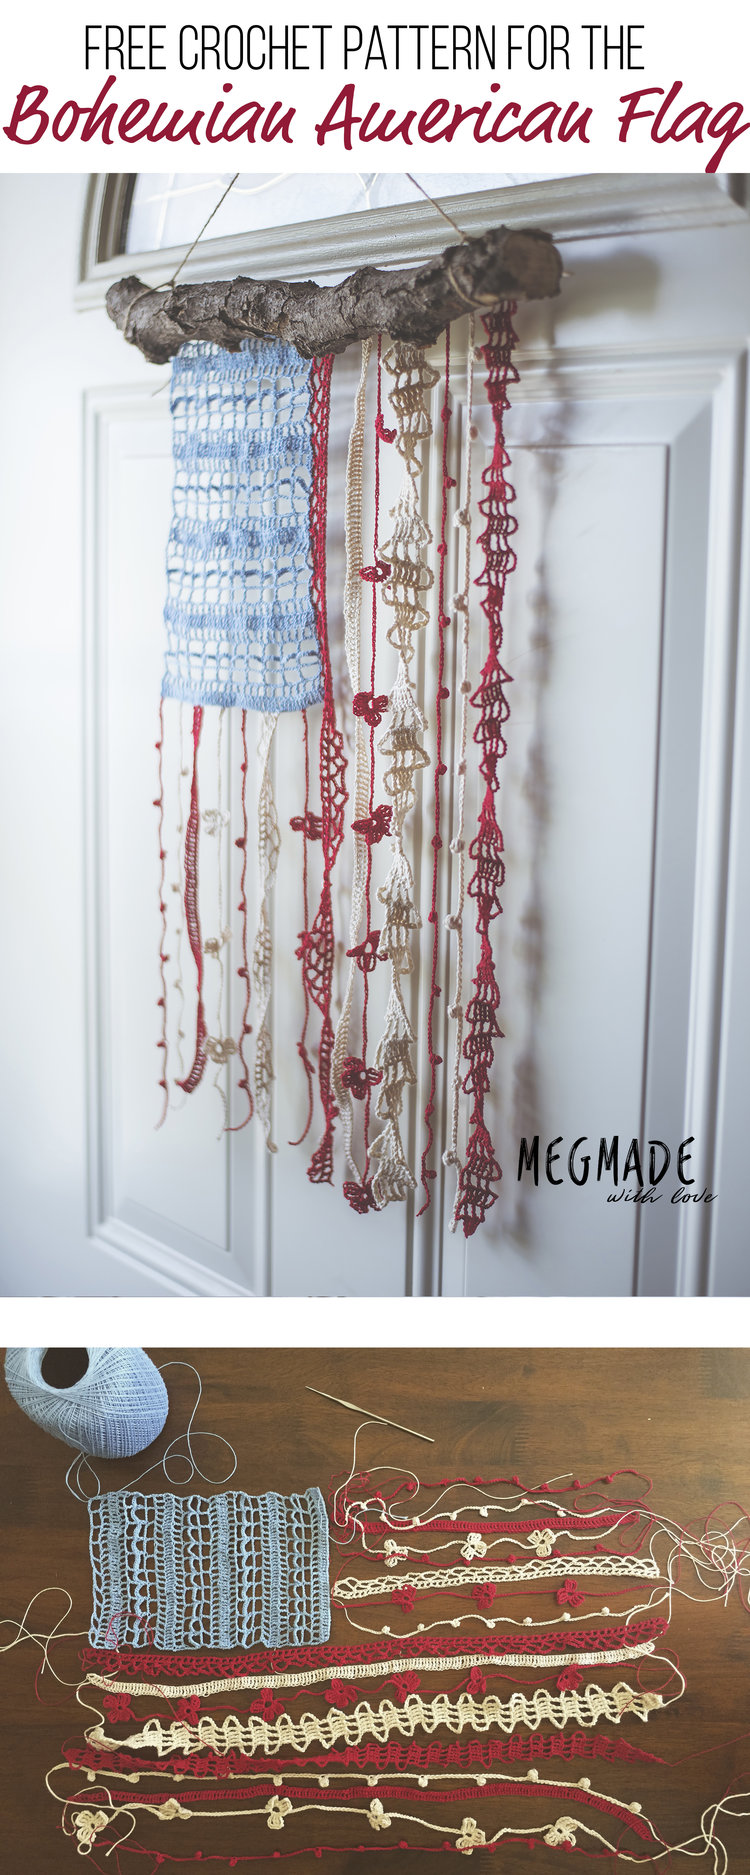 Bohemian American Flag Crochet Pattern Megmade With Love